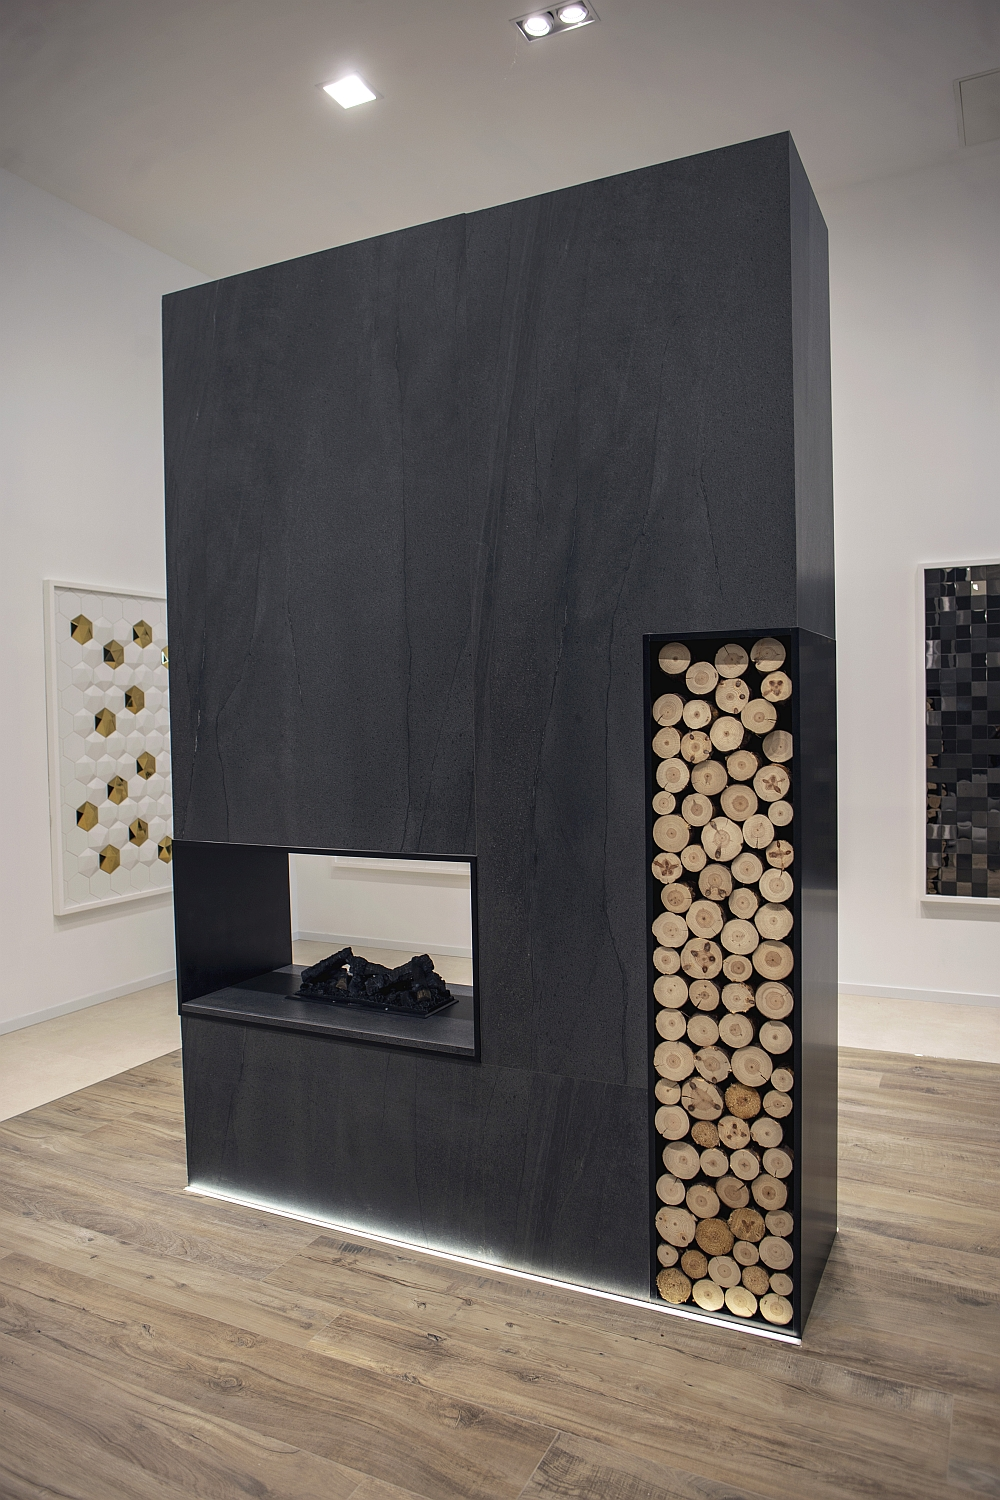 Ceramic wall accent ideas and fireplace area